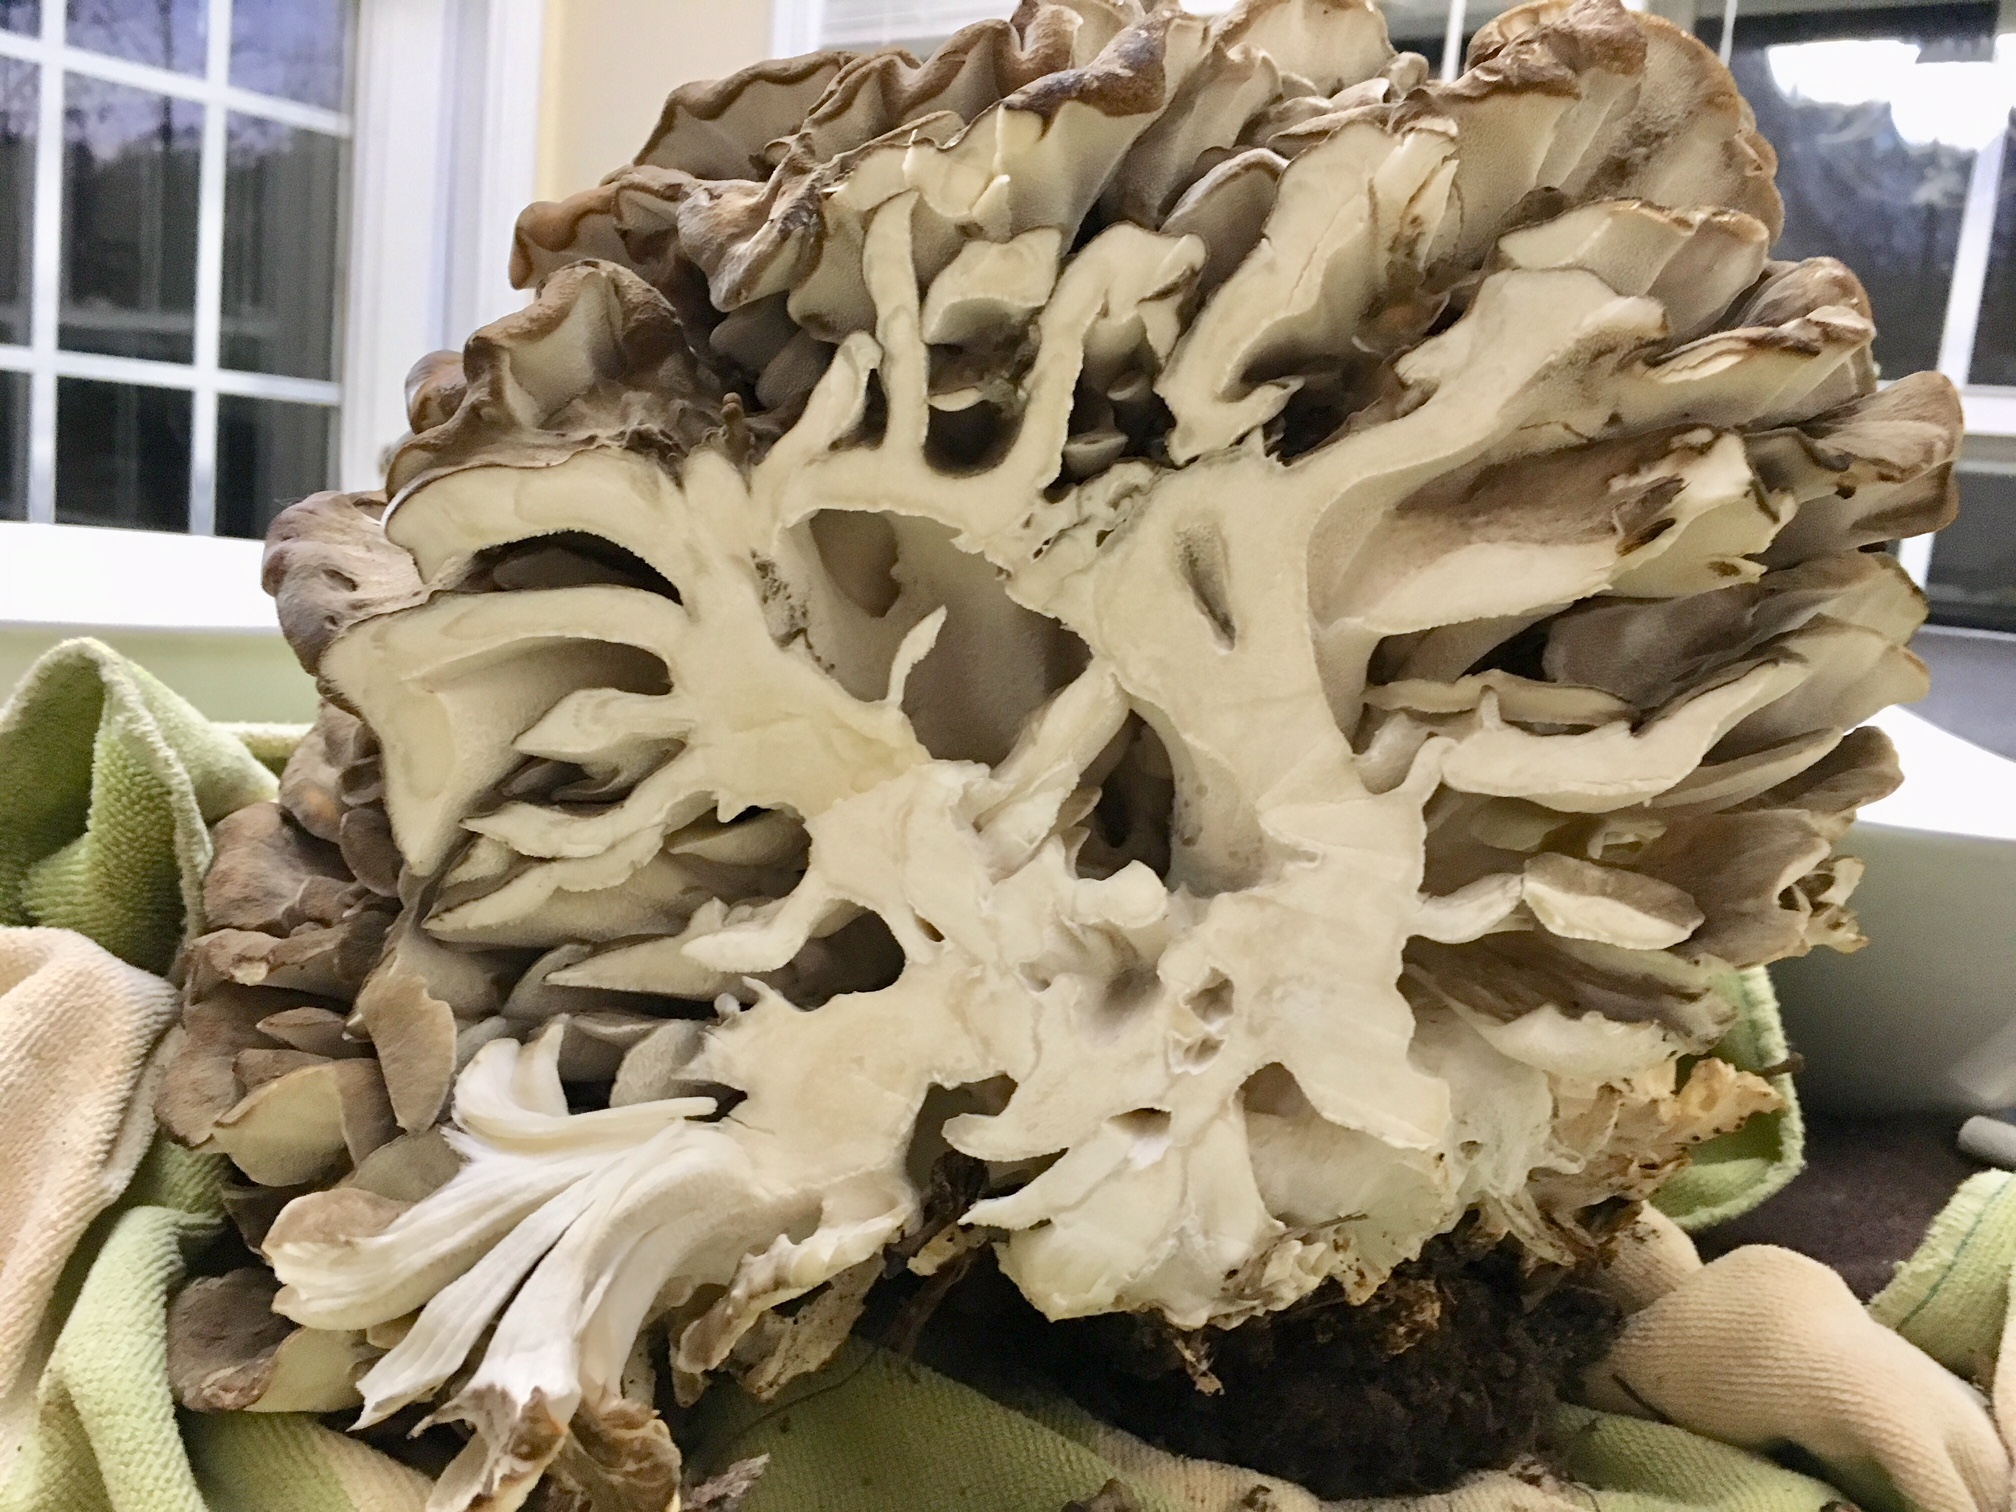 A cross section view of a maitake mushrooms. You can see where the base attached to an underground root and the branching structure that formed as the mushroom grew.